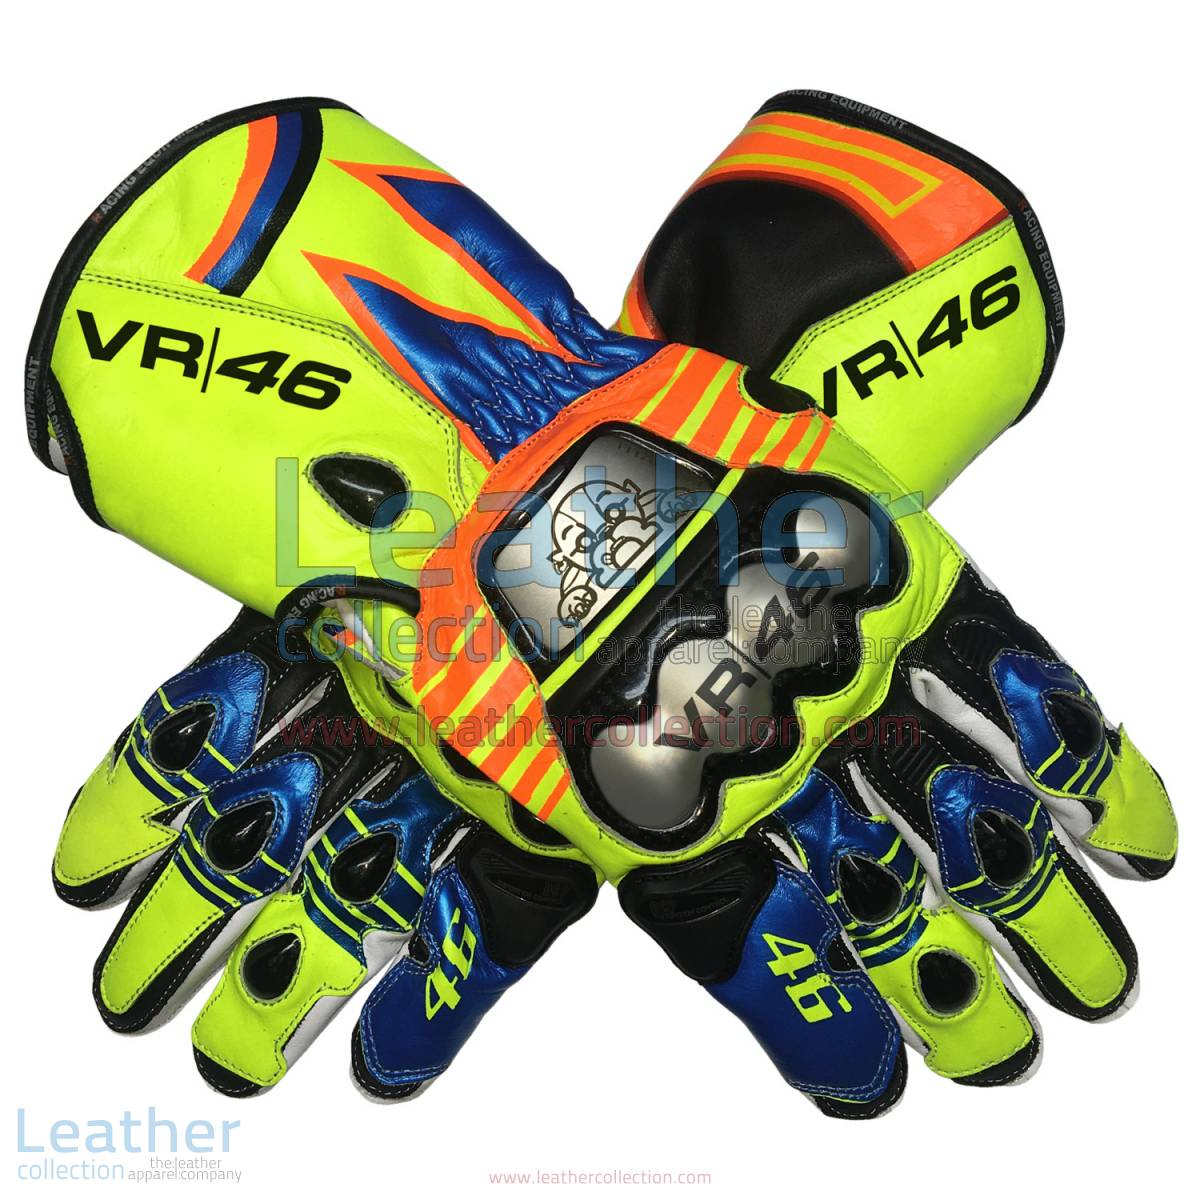 Valentino Rossi Replica Gloves 2013 | motogp gloves,valentino rossi gloves